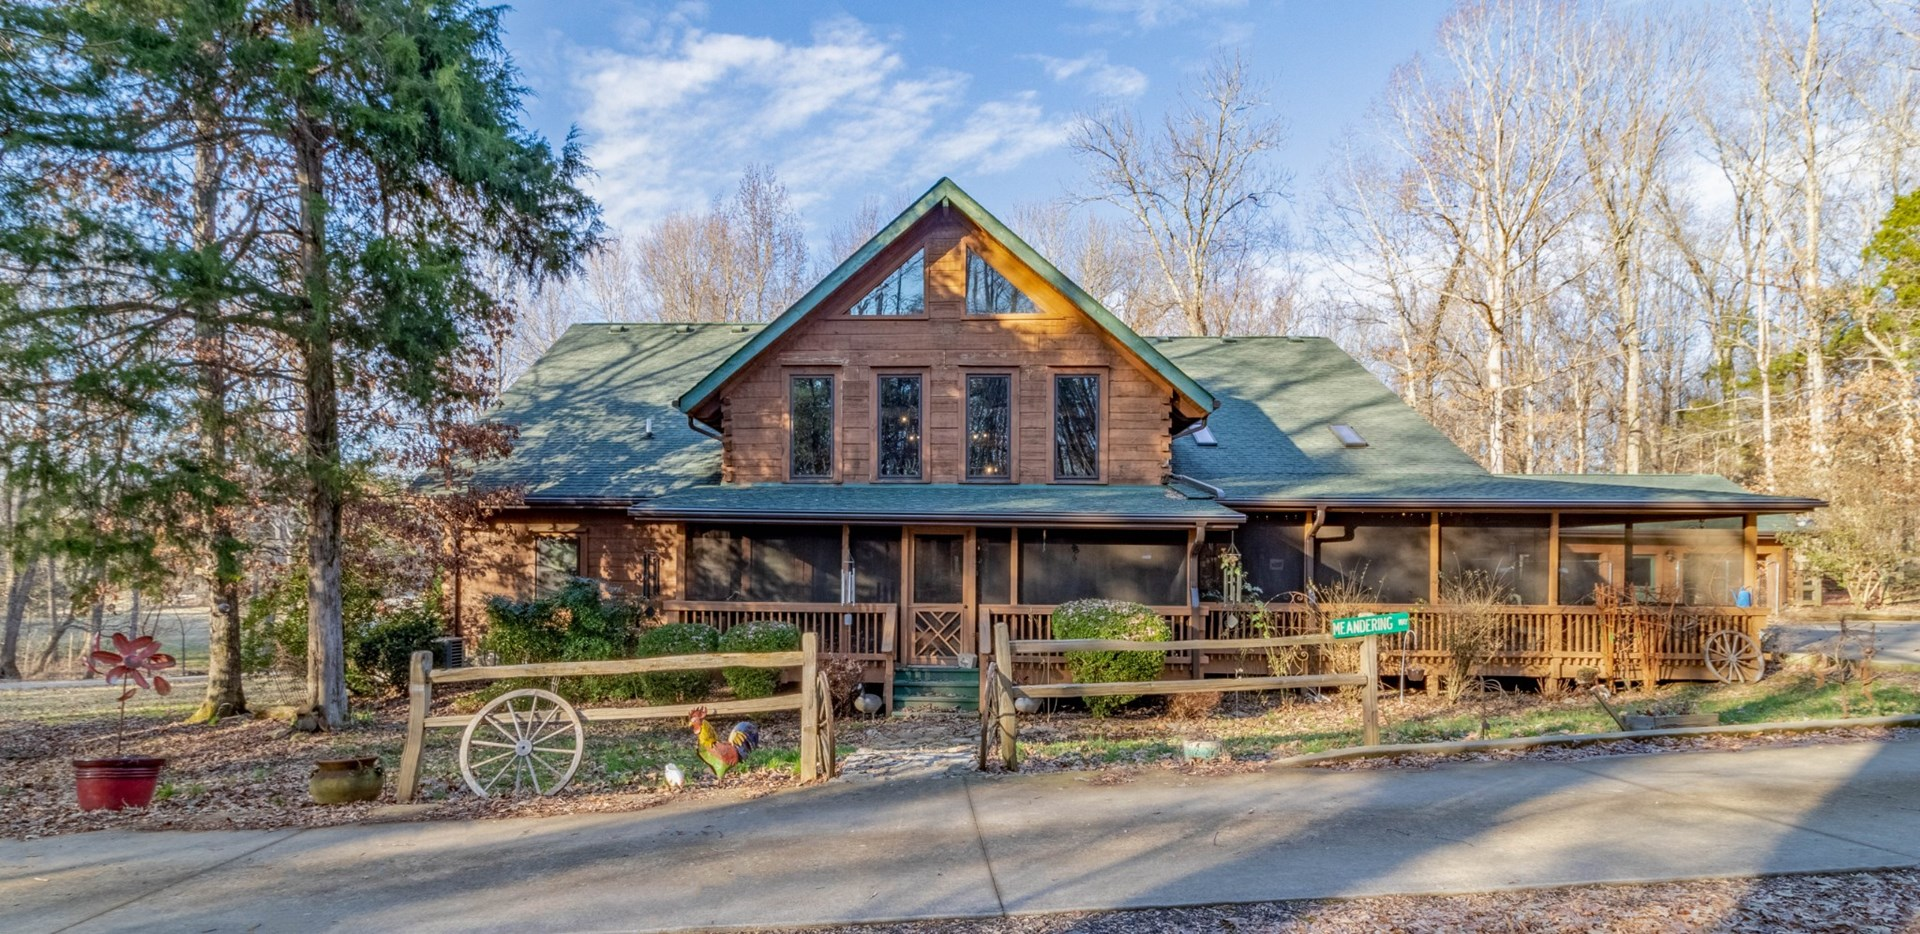 Executive log home hobby farm horses acreage for sale TN